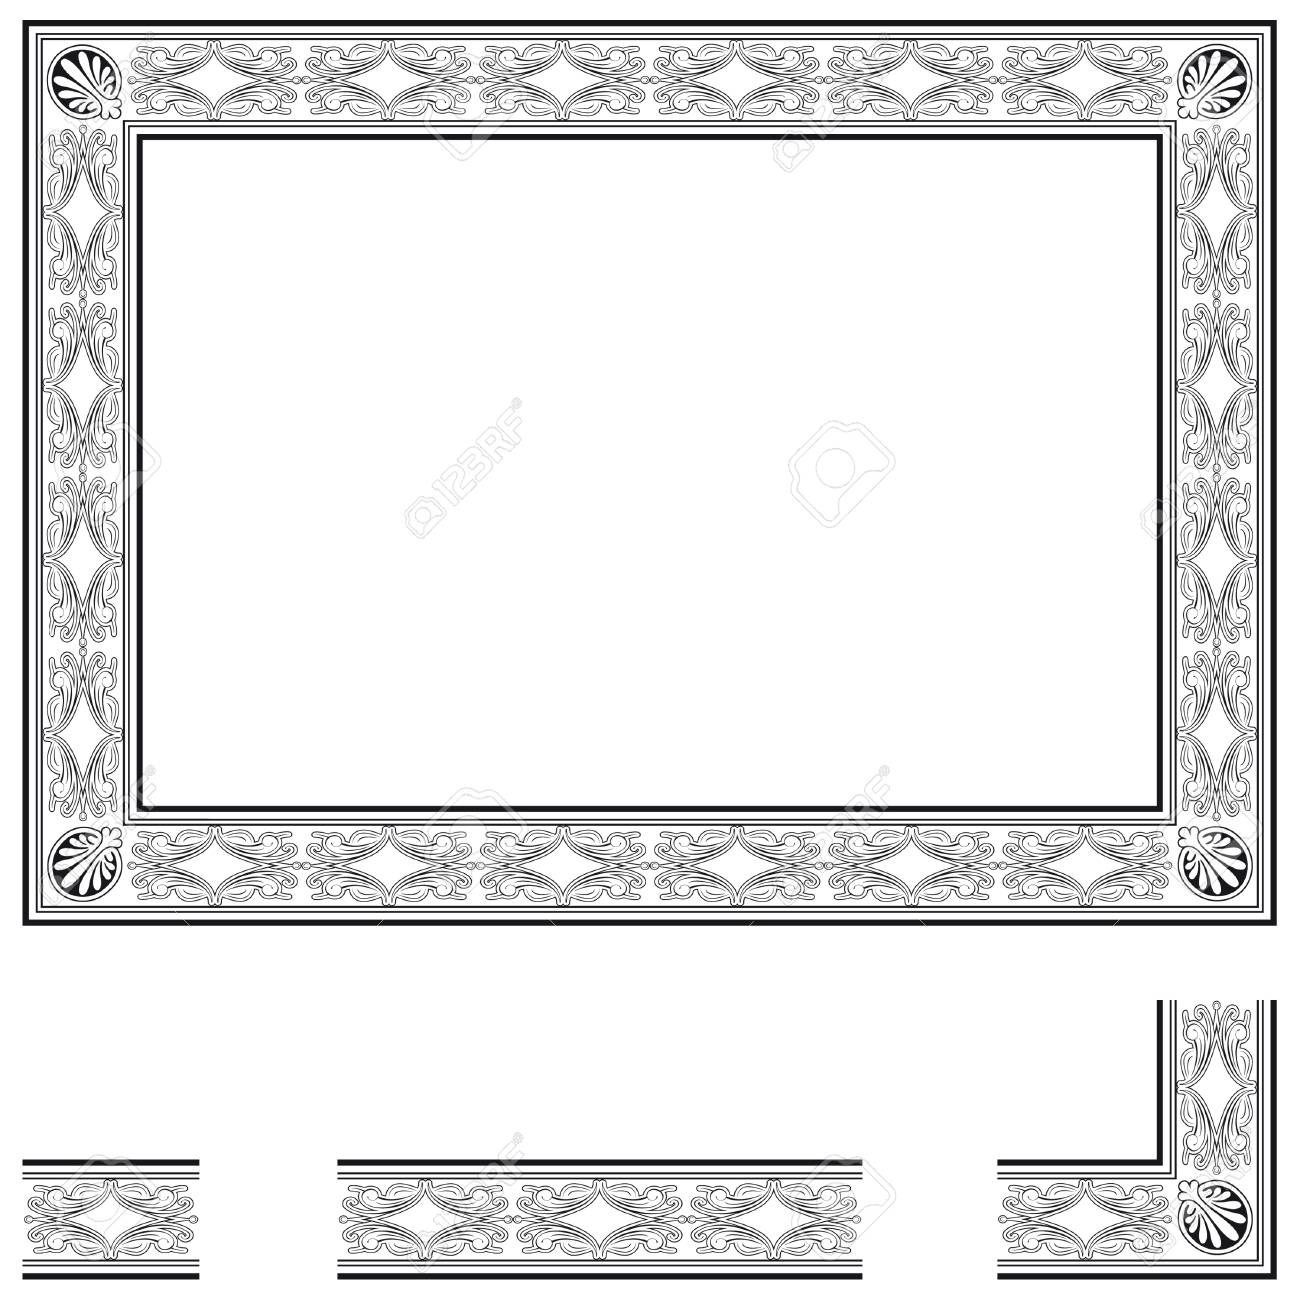 Frame and modular elements to create others at any size stock frame and modular elements to create others at any size stock photo 29138966 jeuxipadfo Choice Image